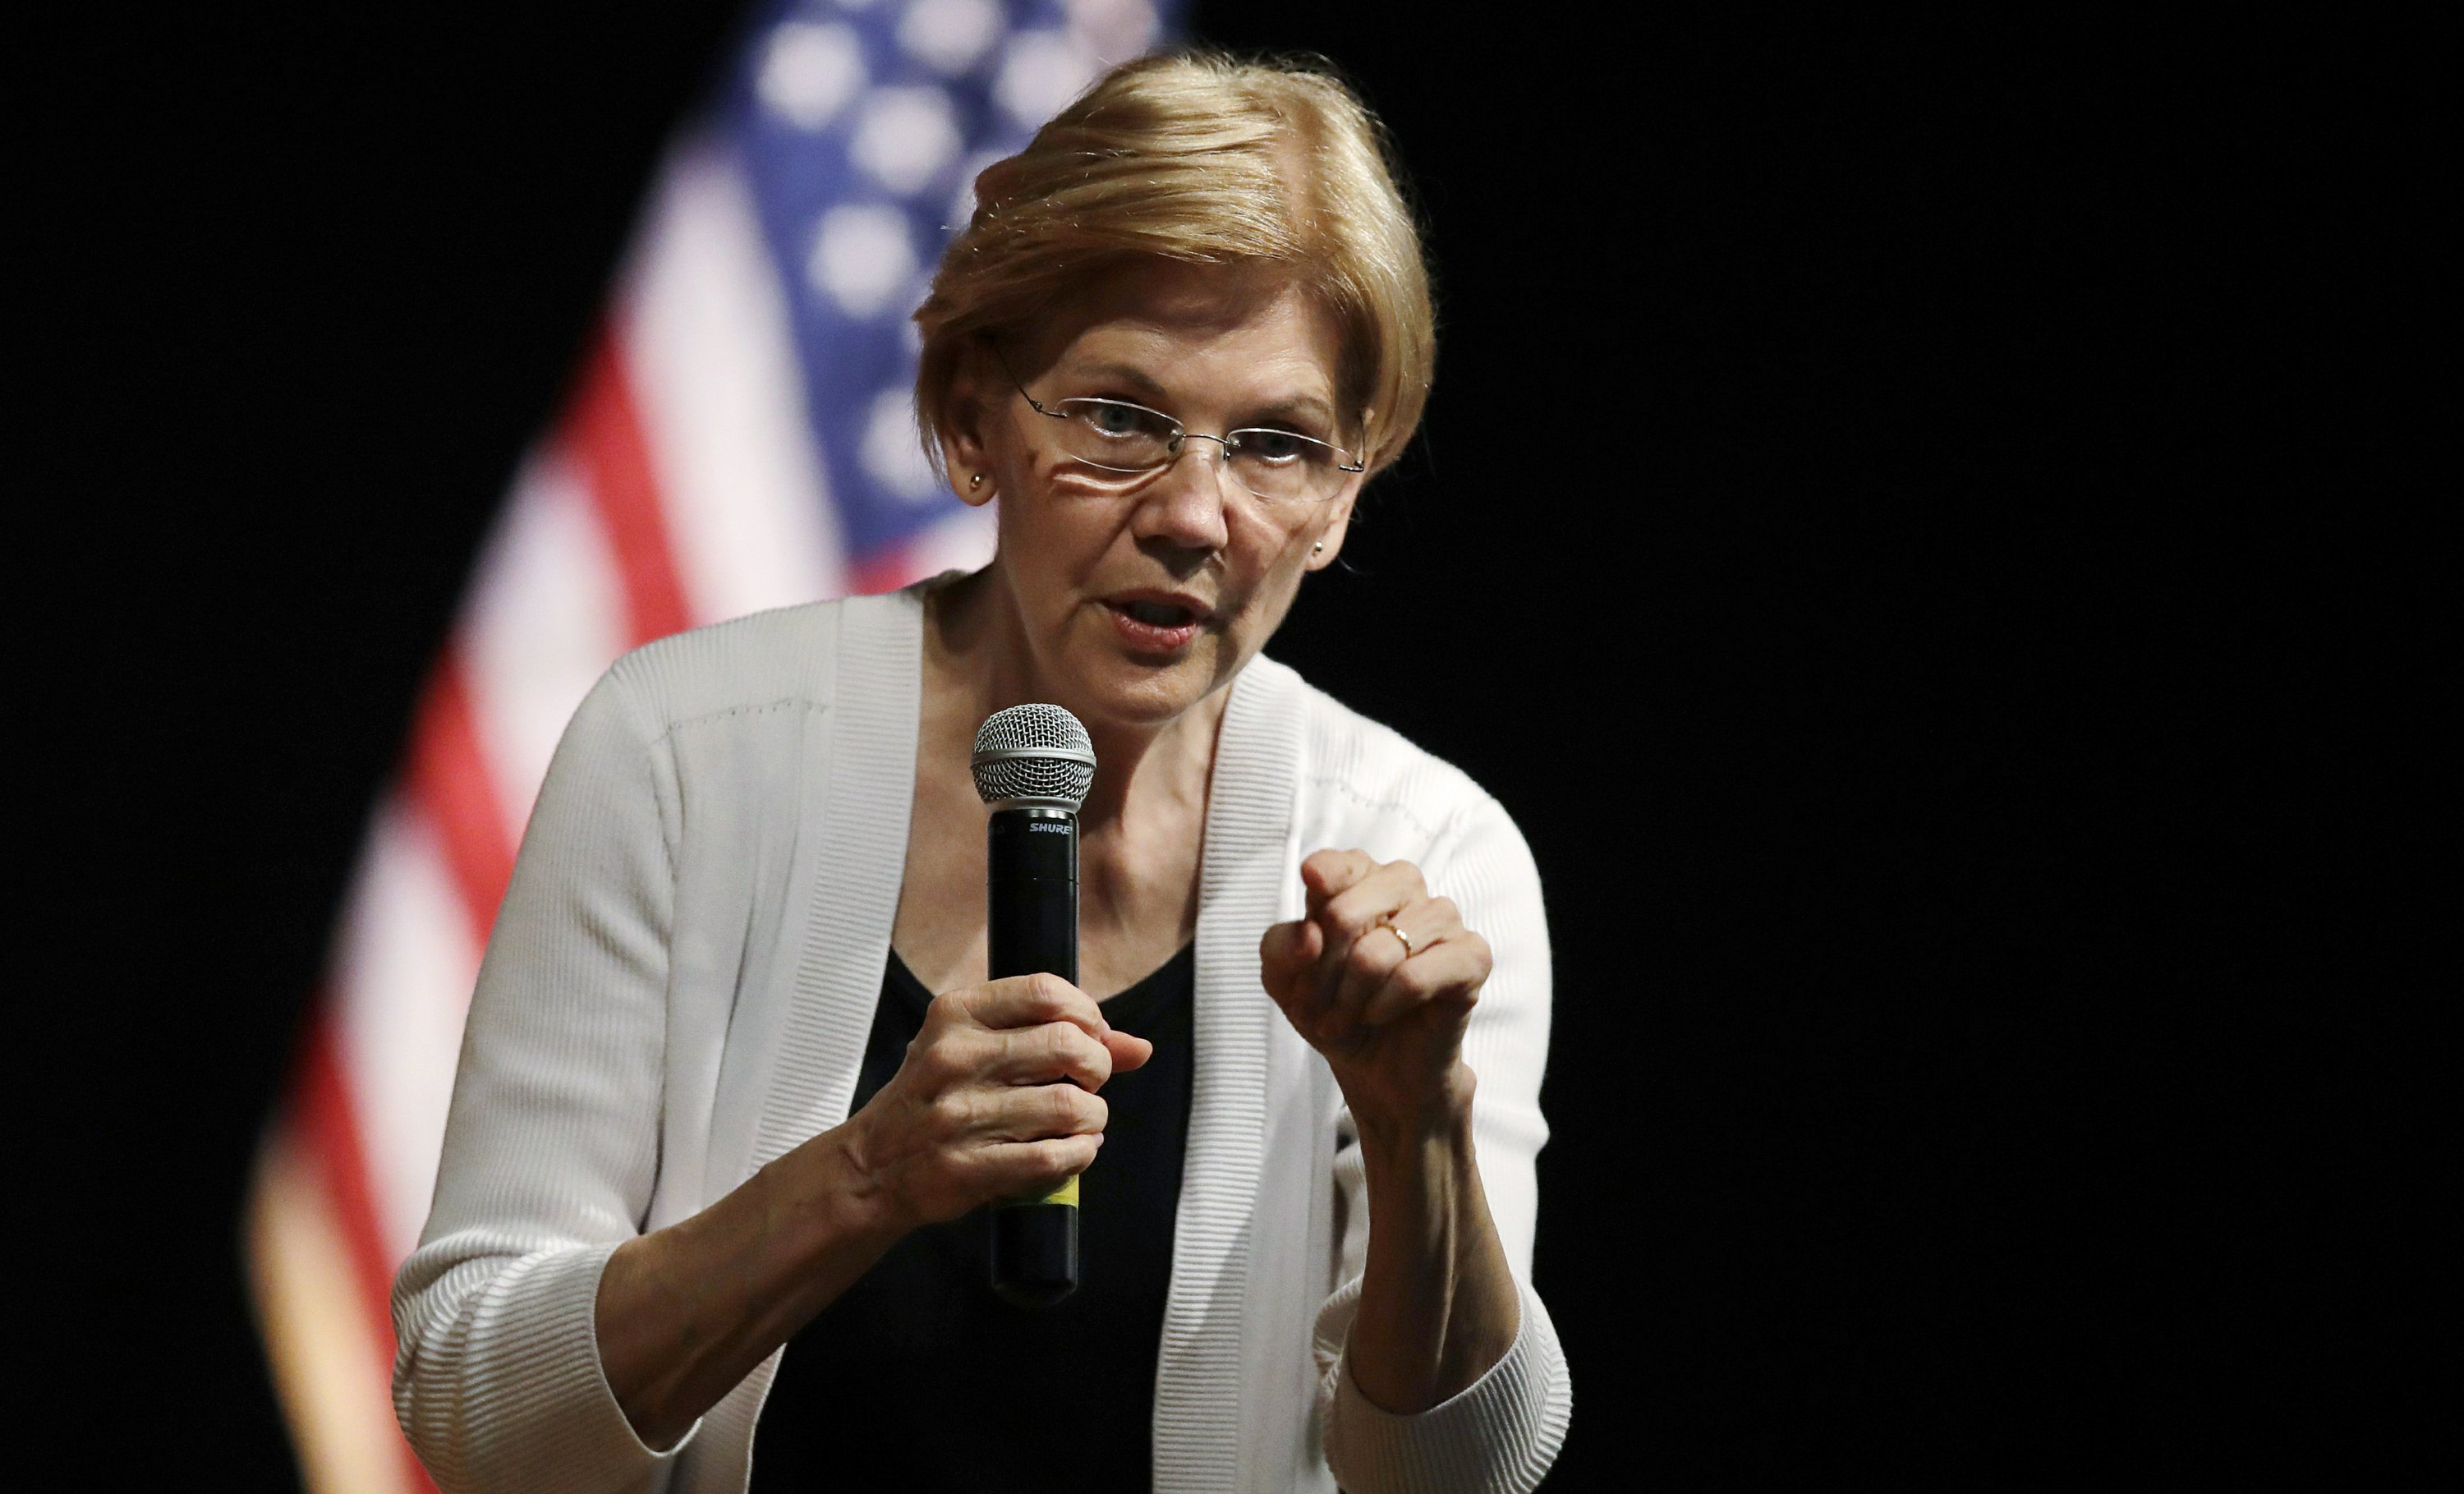 Trump lashes out at Warren over DNA test, calls her 'phony!'